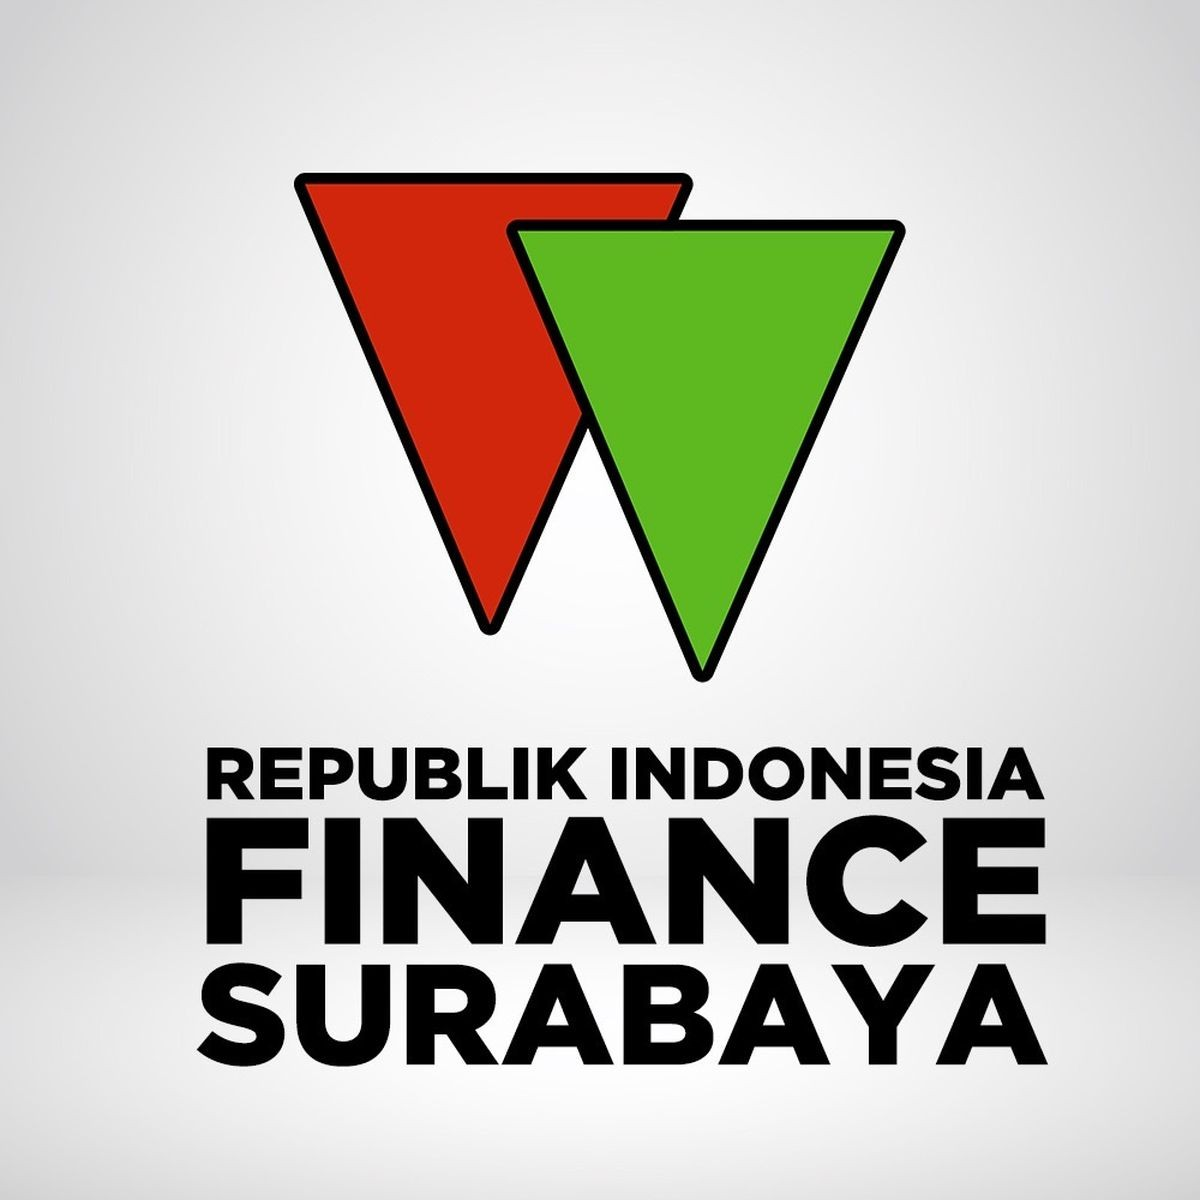 Republik Indonesia Finance Surabaya, PT